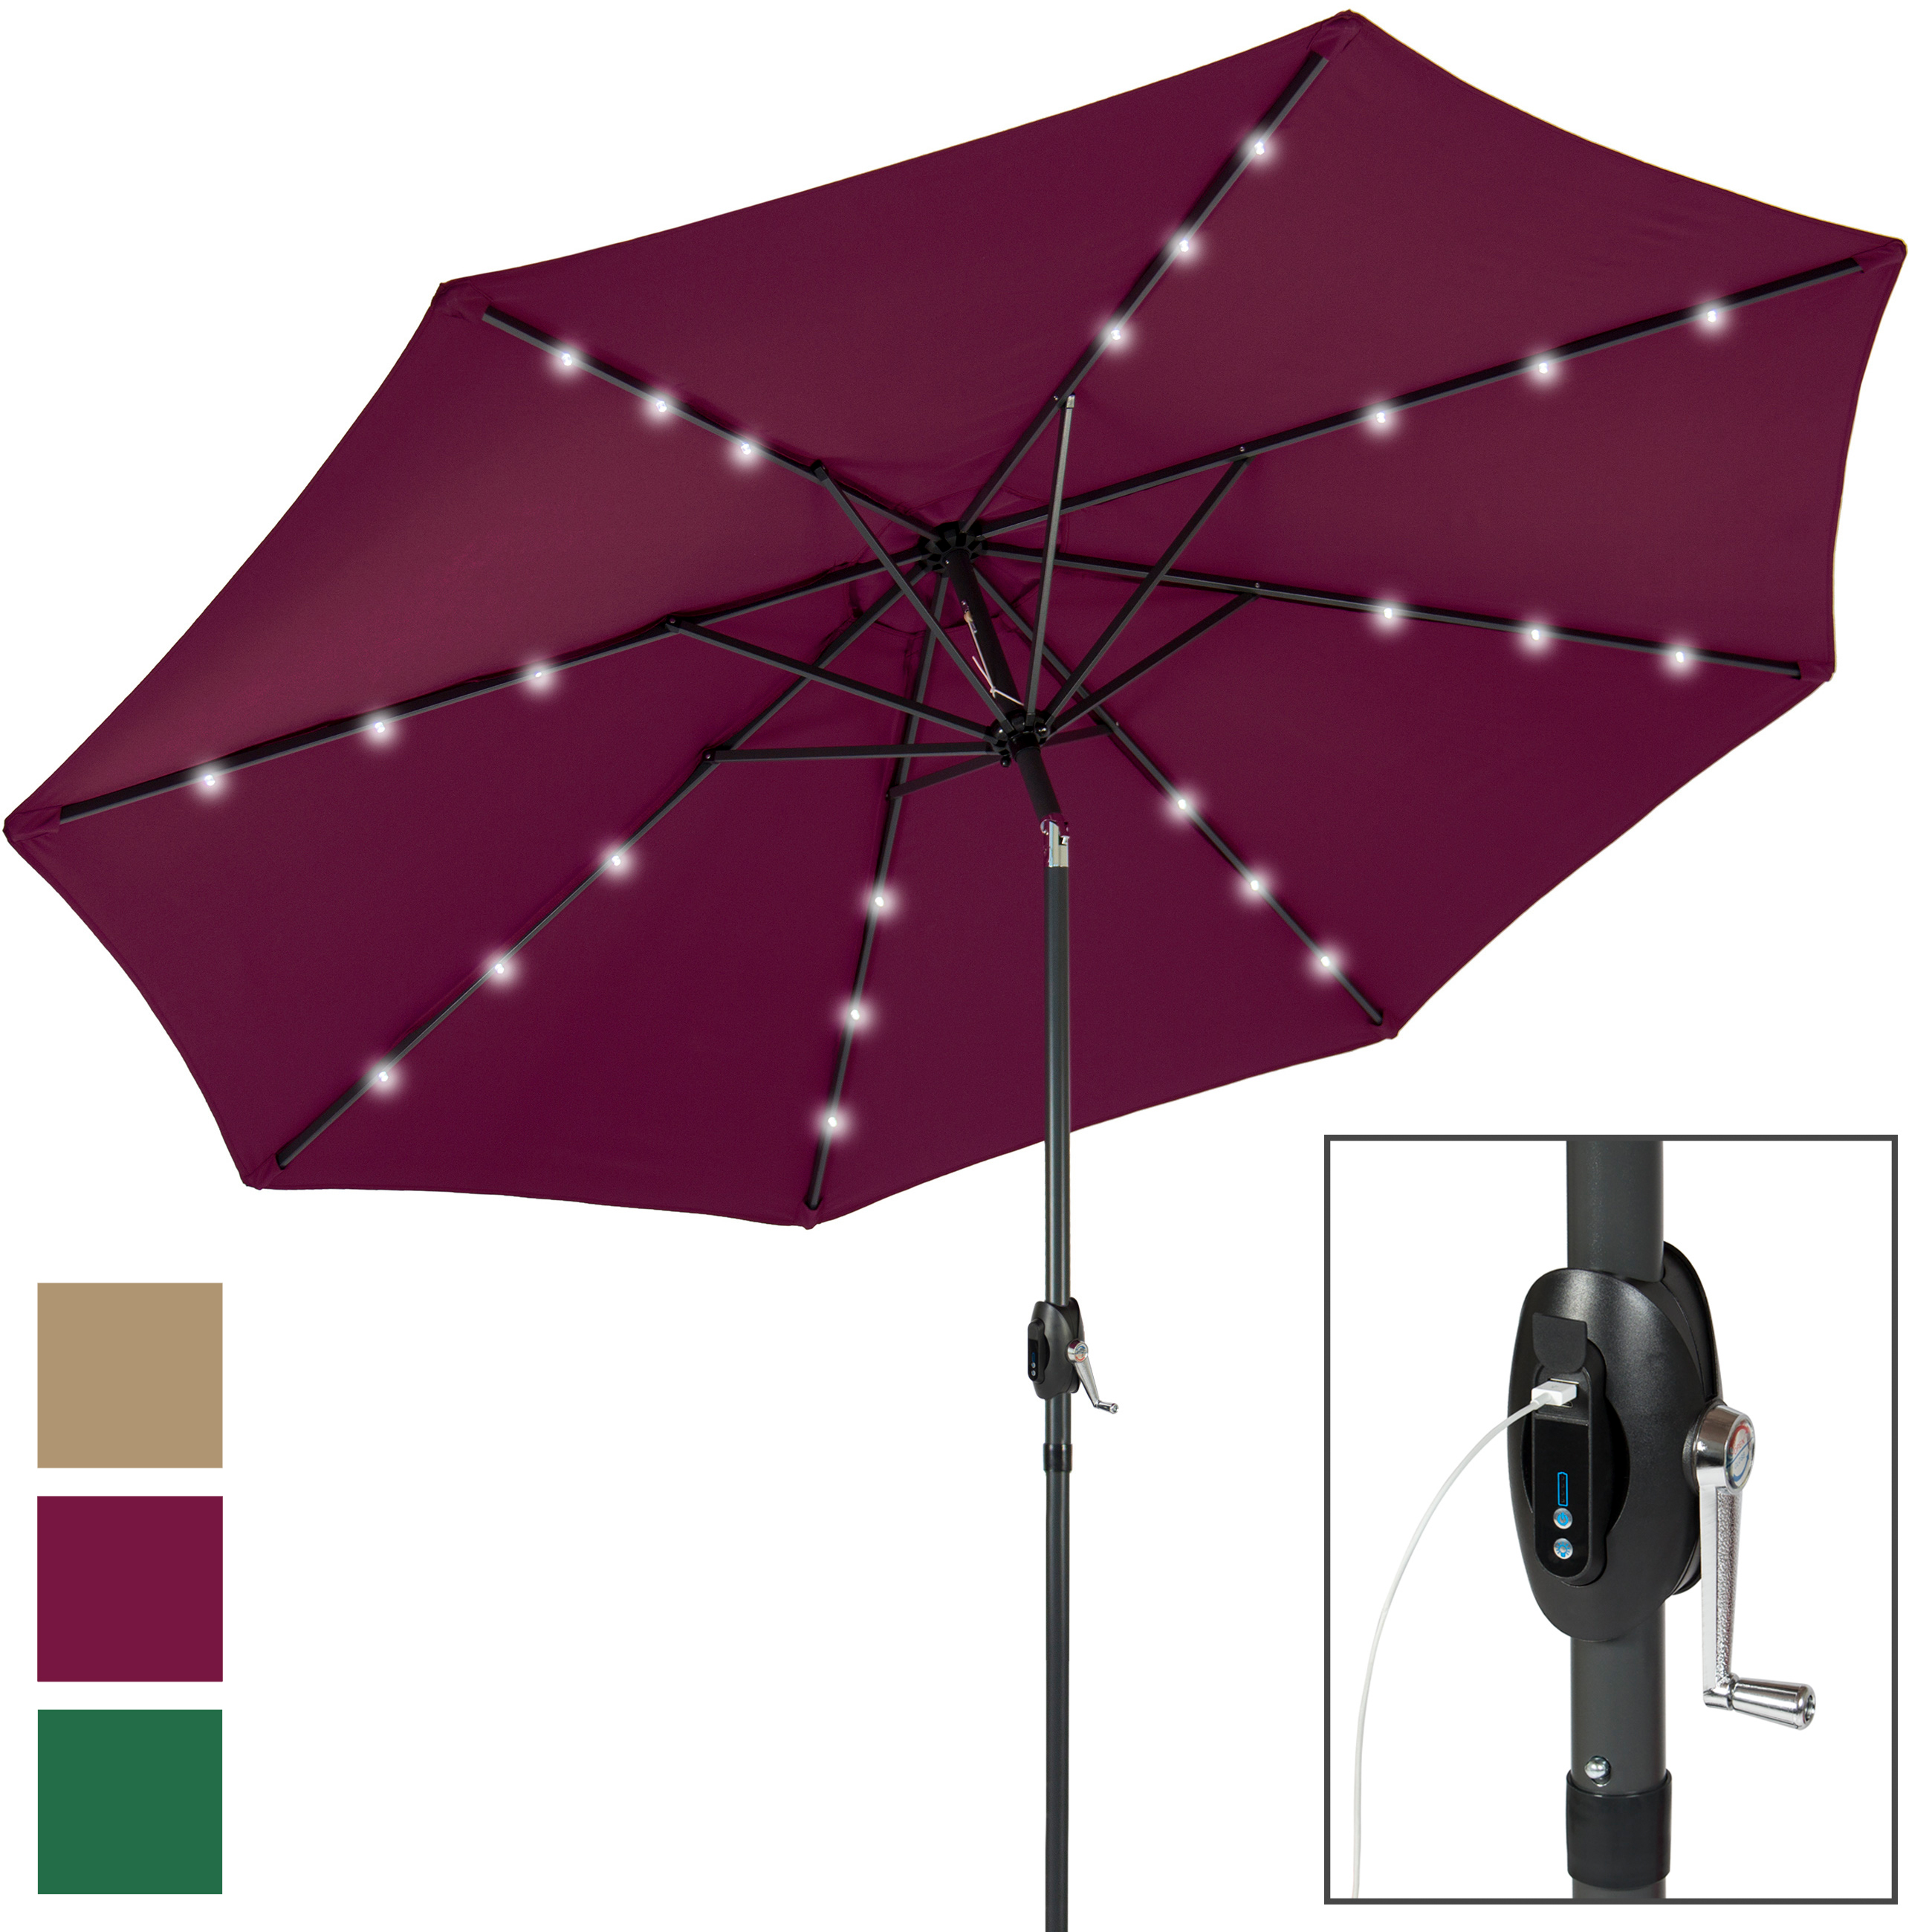 Portable USB Charger Bank 10' LED Light Patio Solar Umbrella Tilt Adjustment by